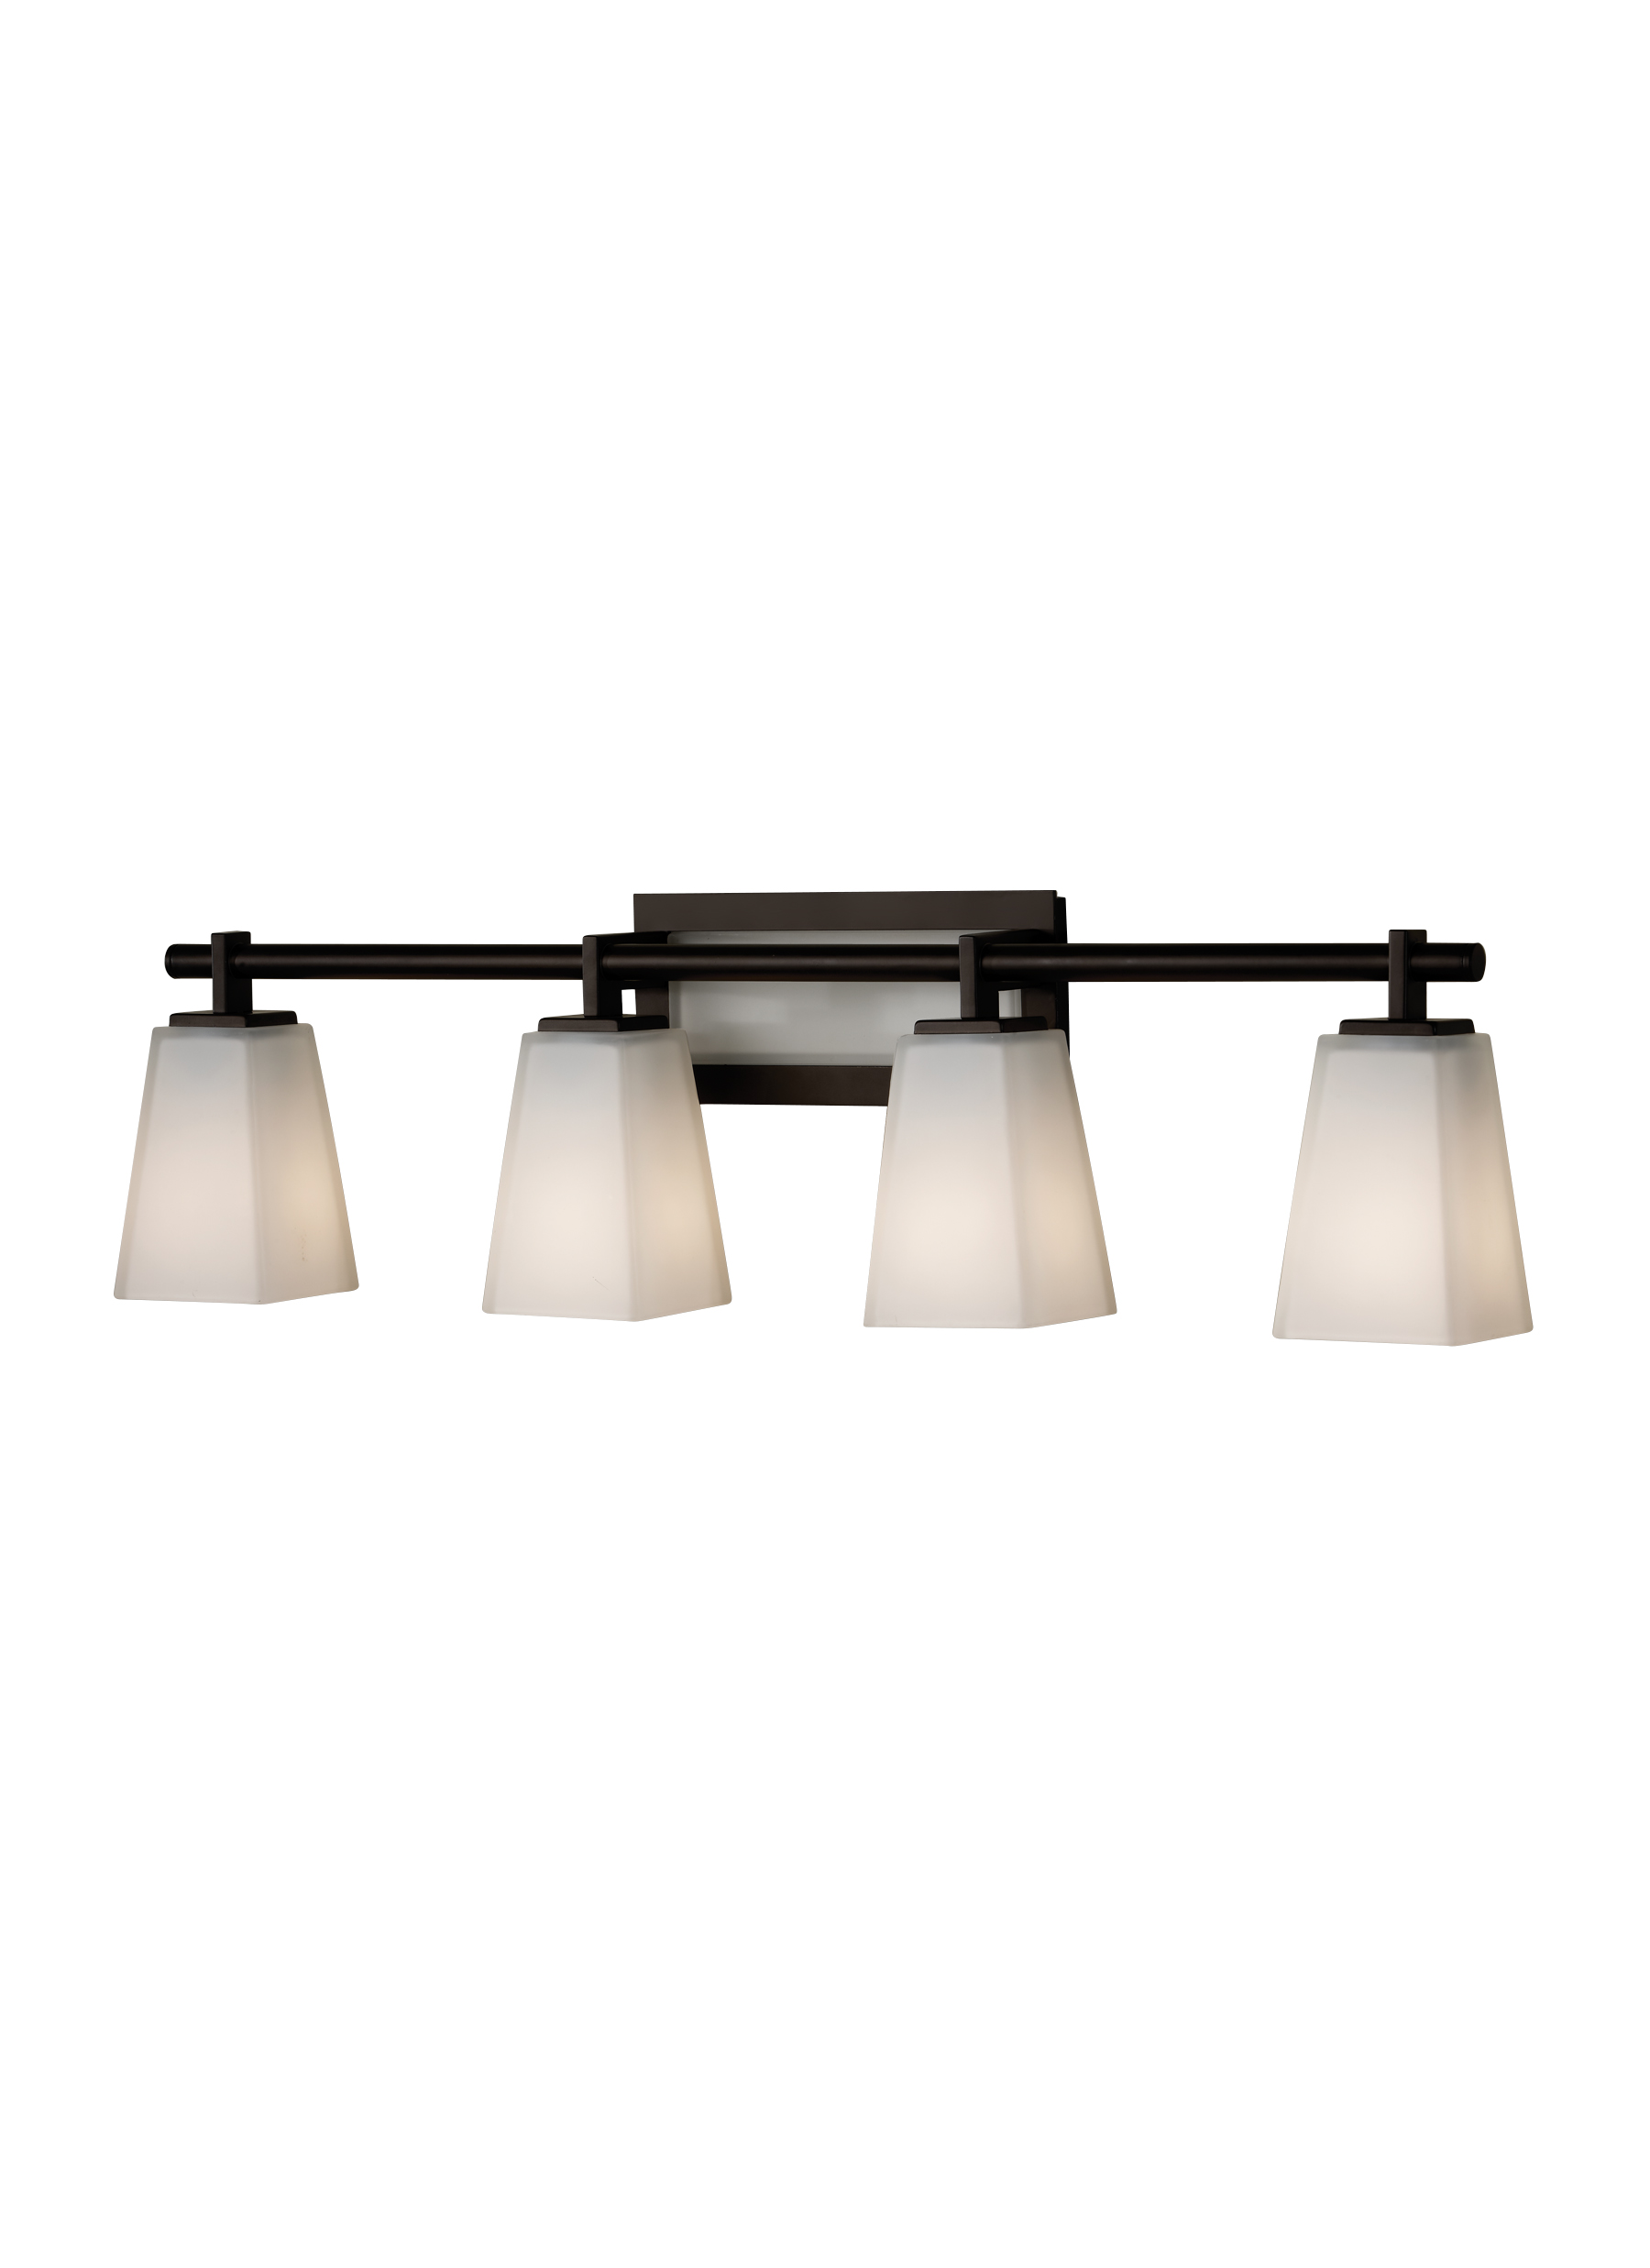 VS16604-ORB,4 - Light Vanity Fixture,Oil Rubbed Bronze